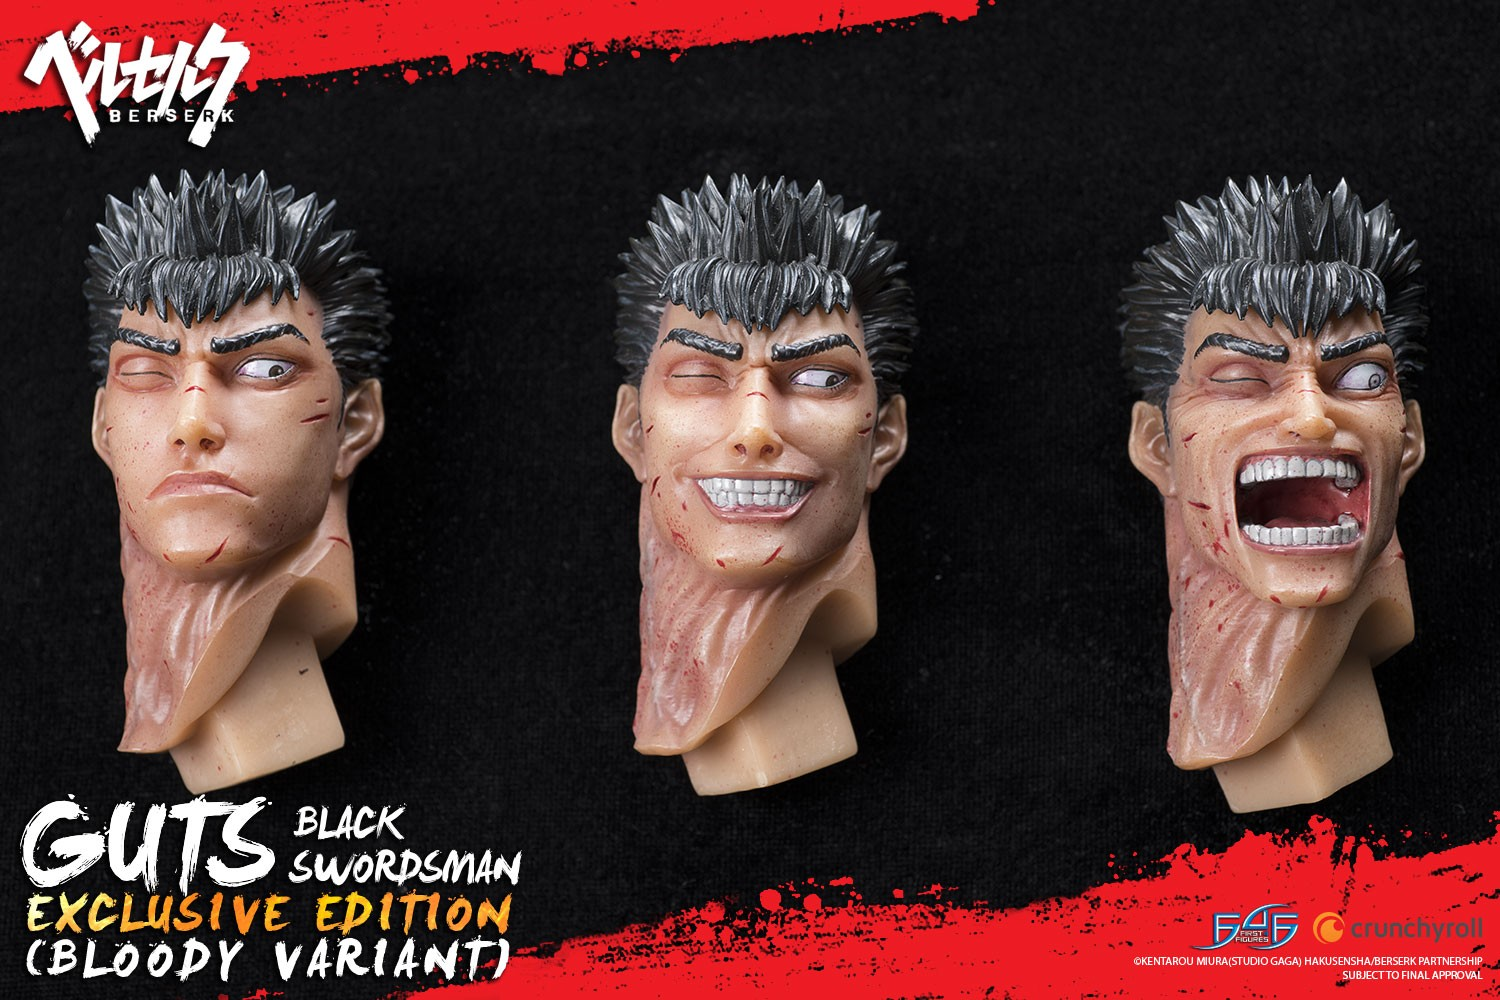 Guts: The Black Swordsman (Exclusive) Head Sculpts